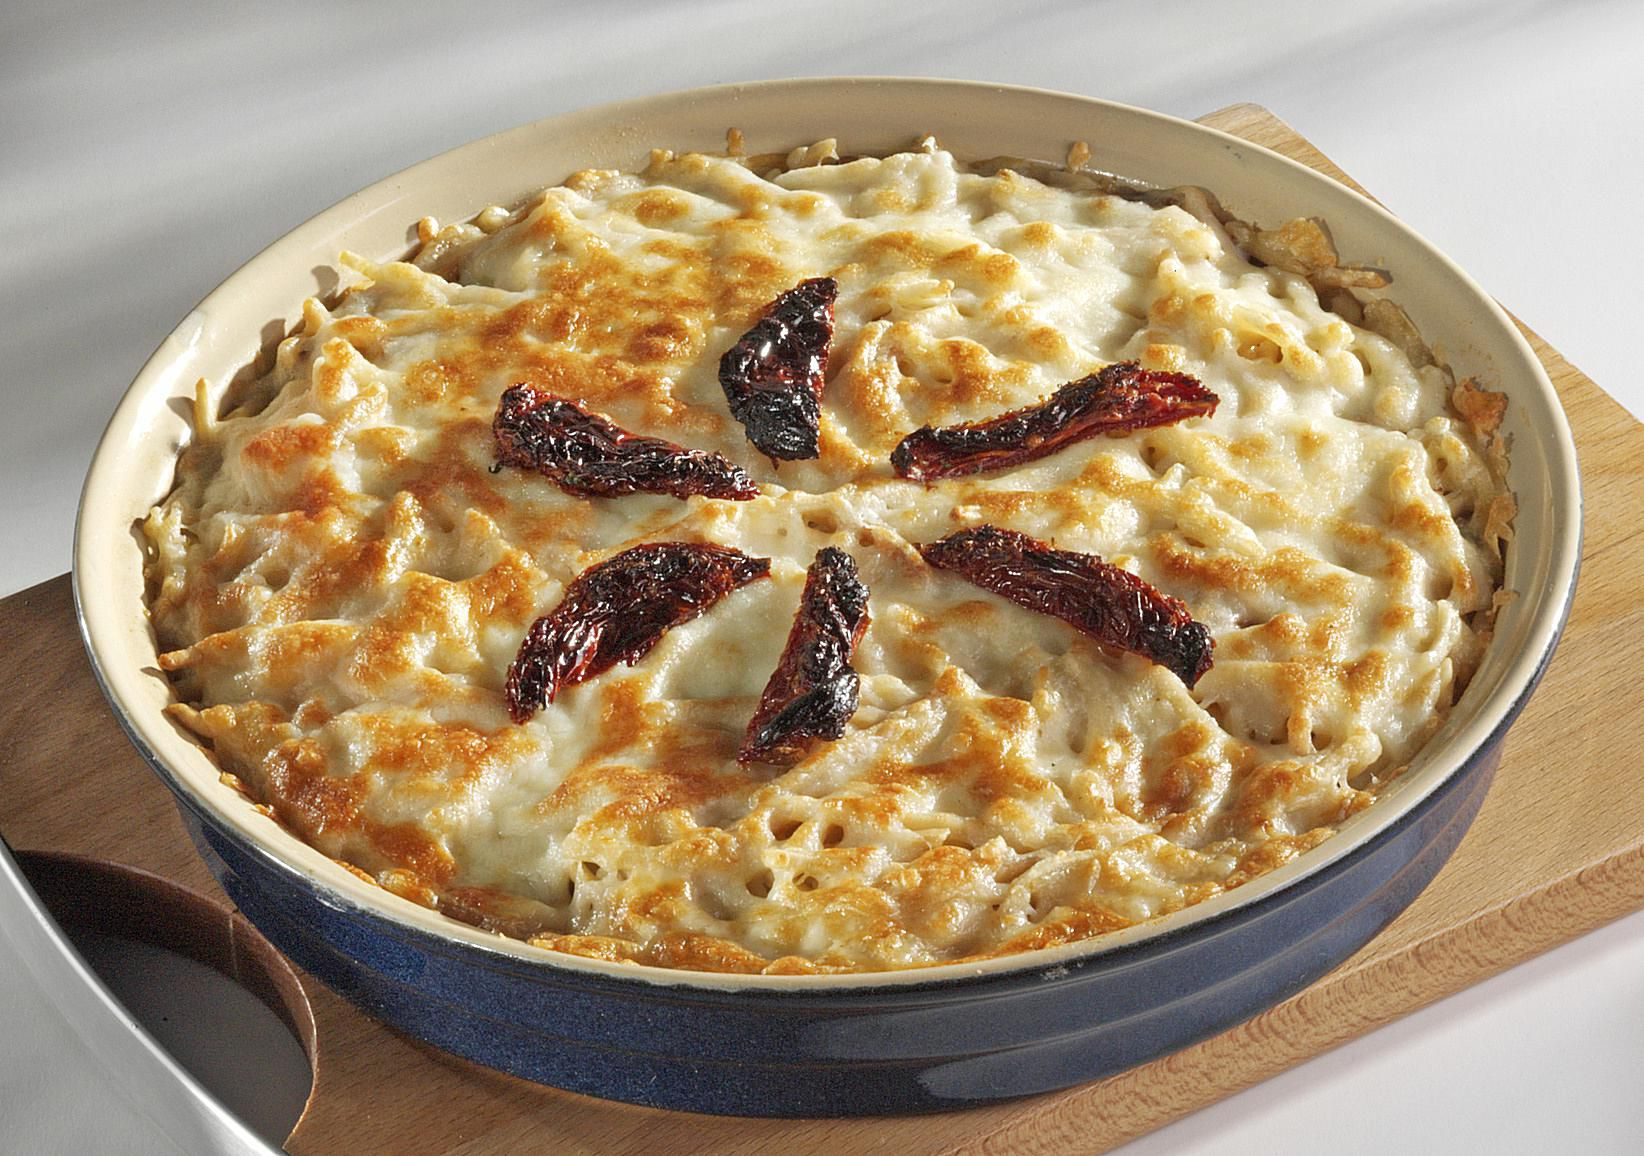 Turkish Baked Mac and Cheese